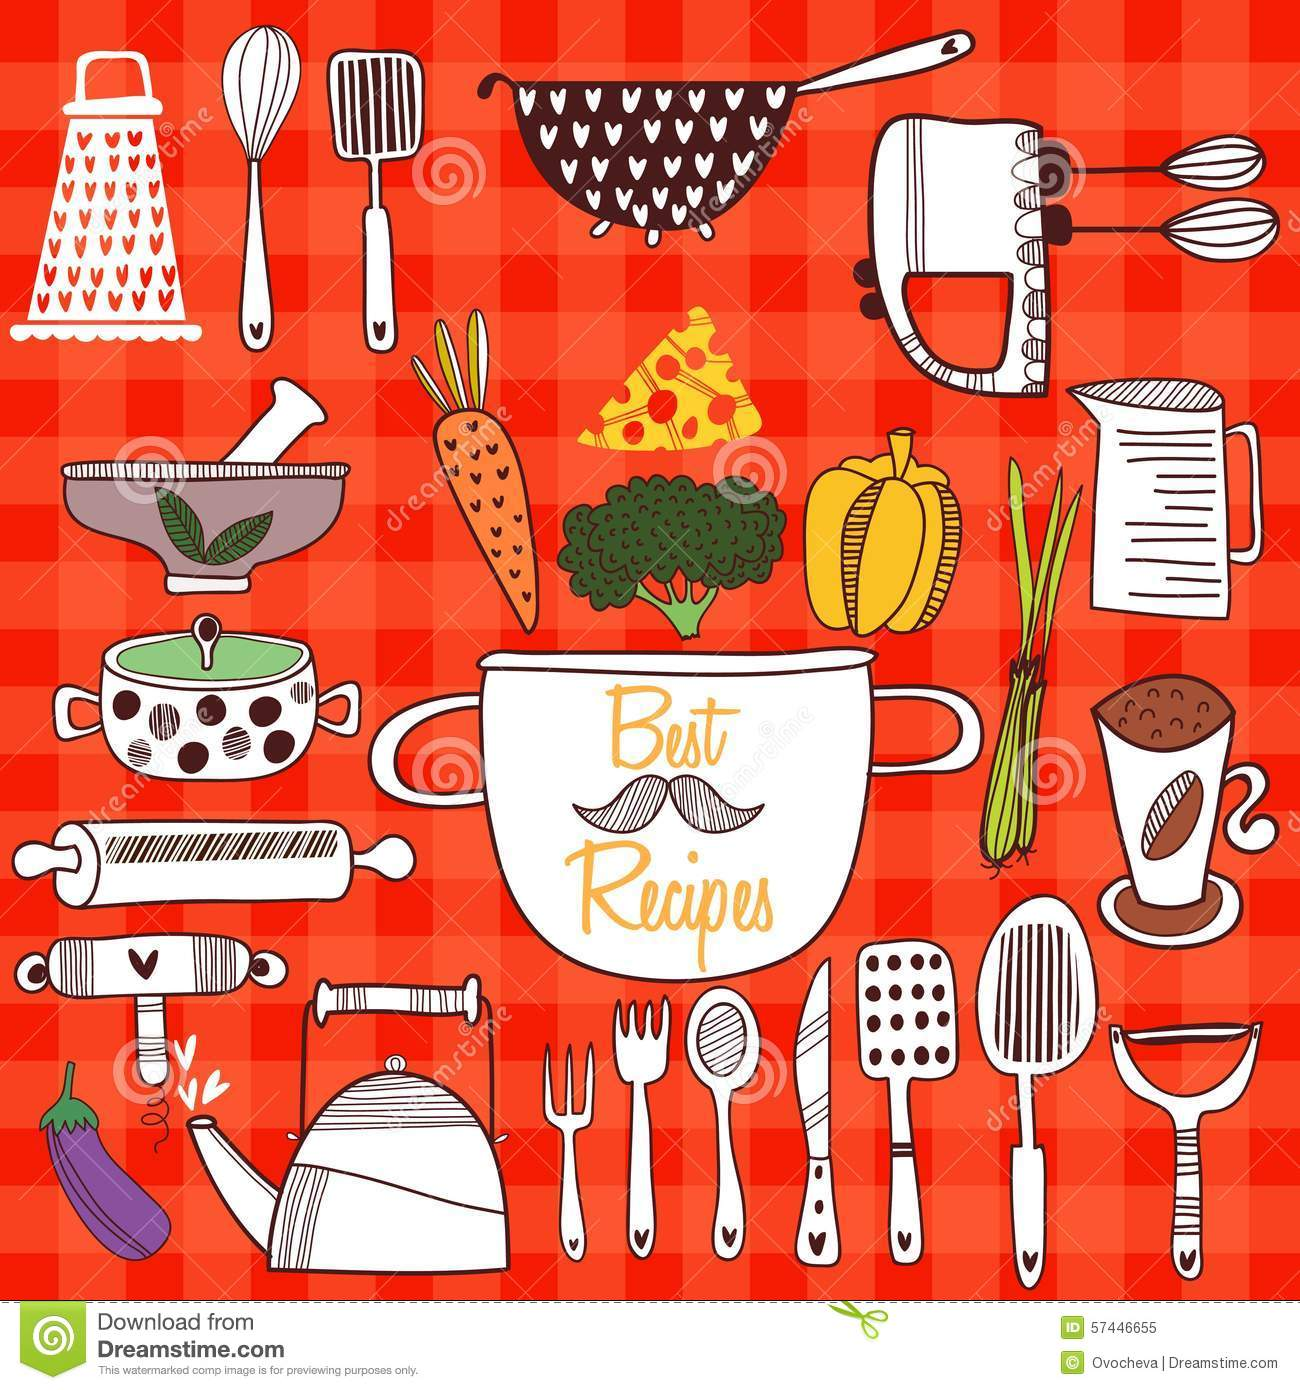 Retro Kitchen Illustration: Best Recipes-Set Of Kitchen Tools On Cconcept Background